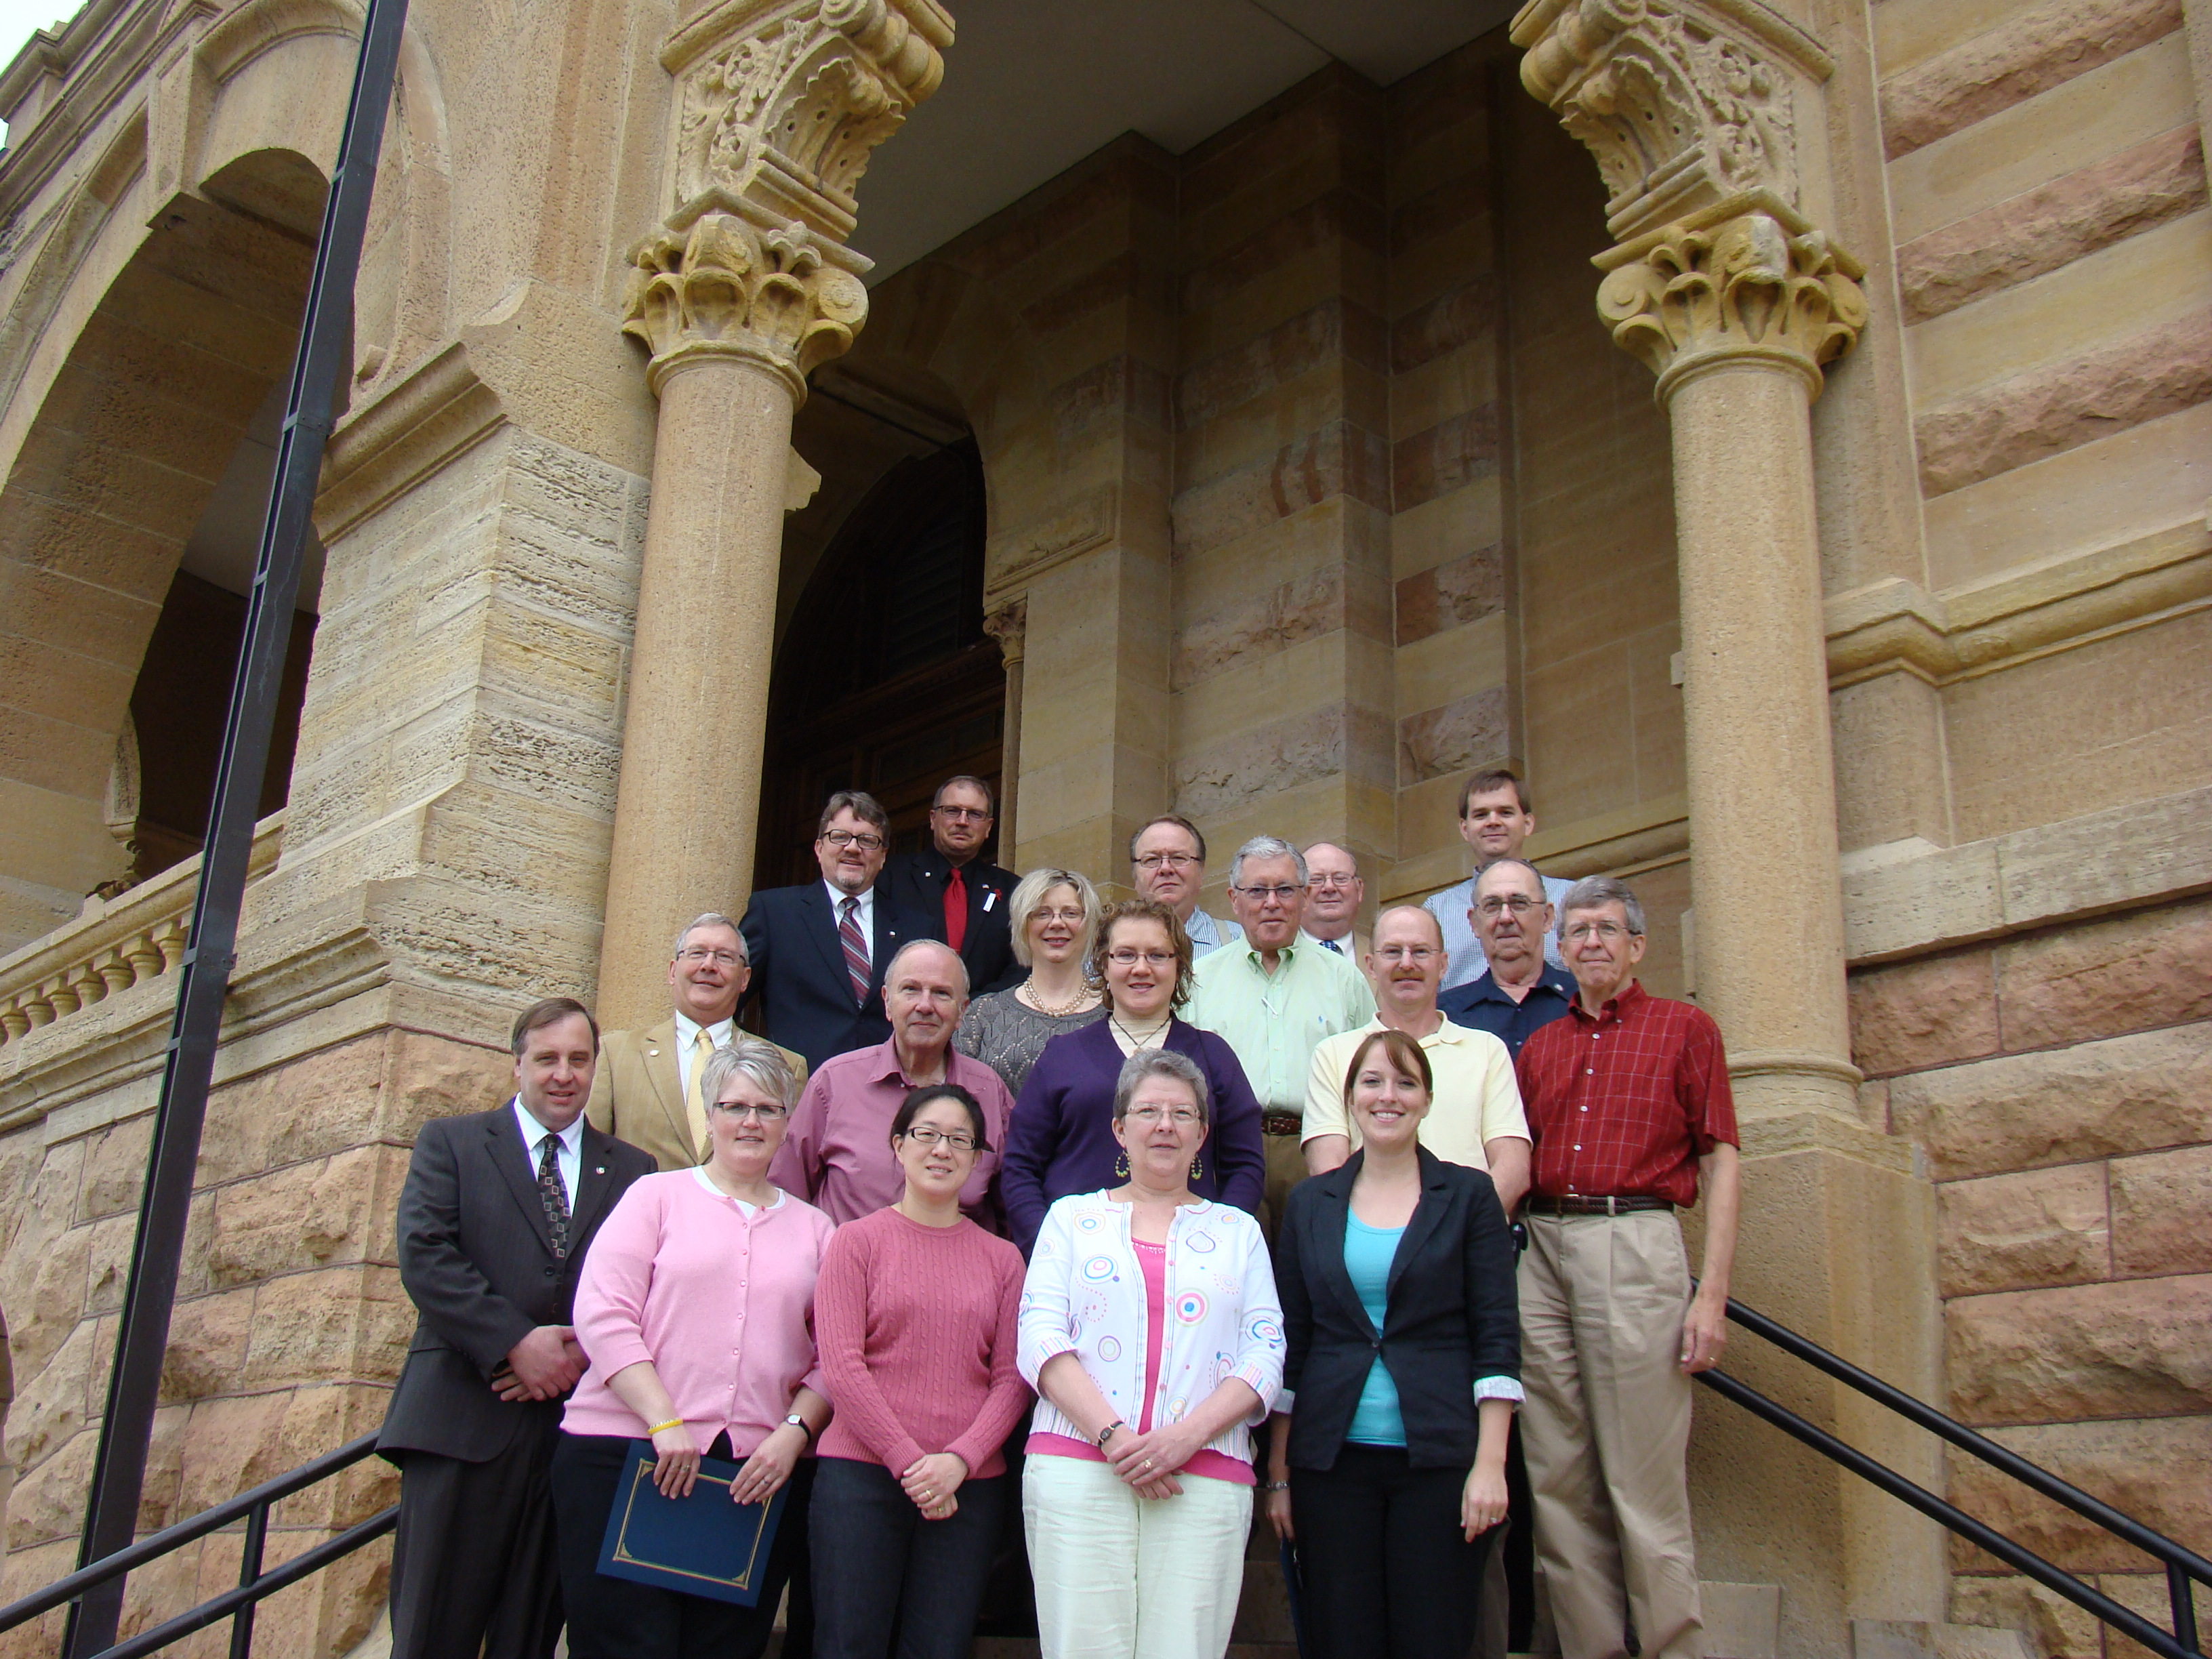 2012 graduates with the Board of Commissioners on the steps of the Historic Courthouse.